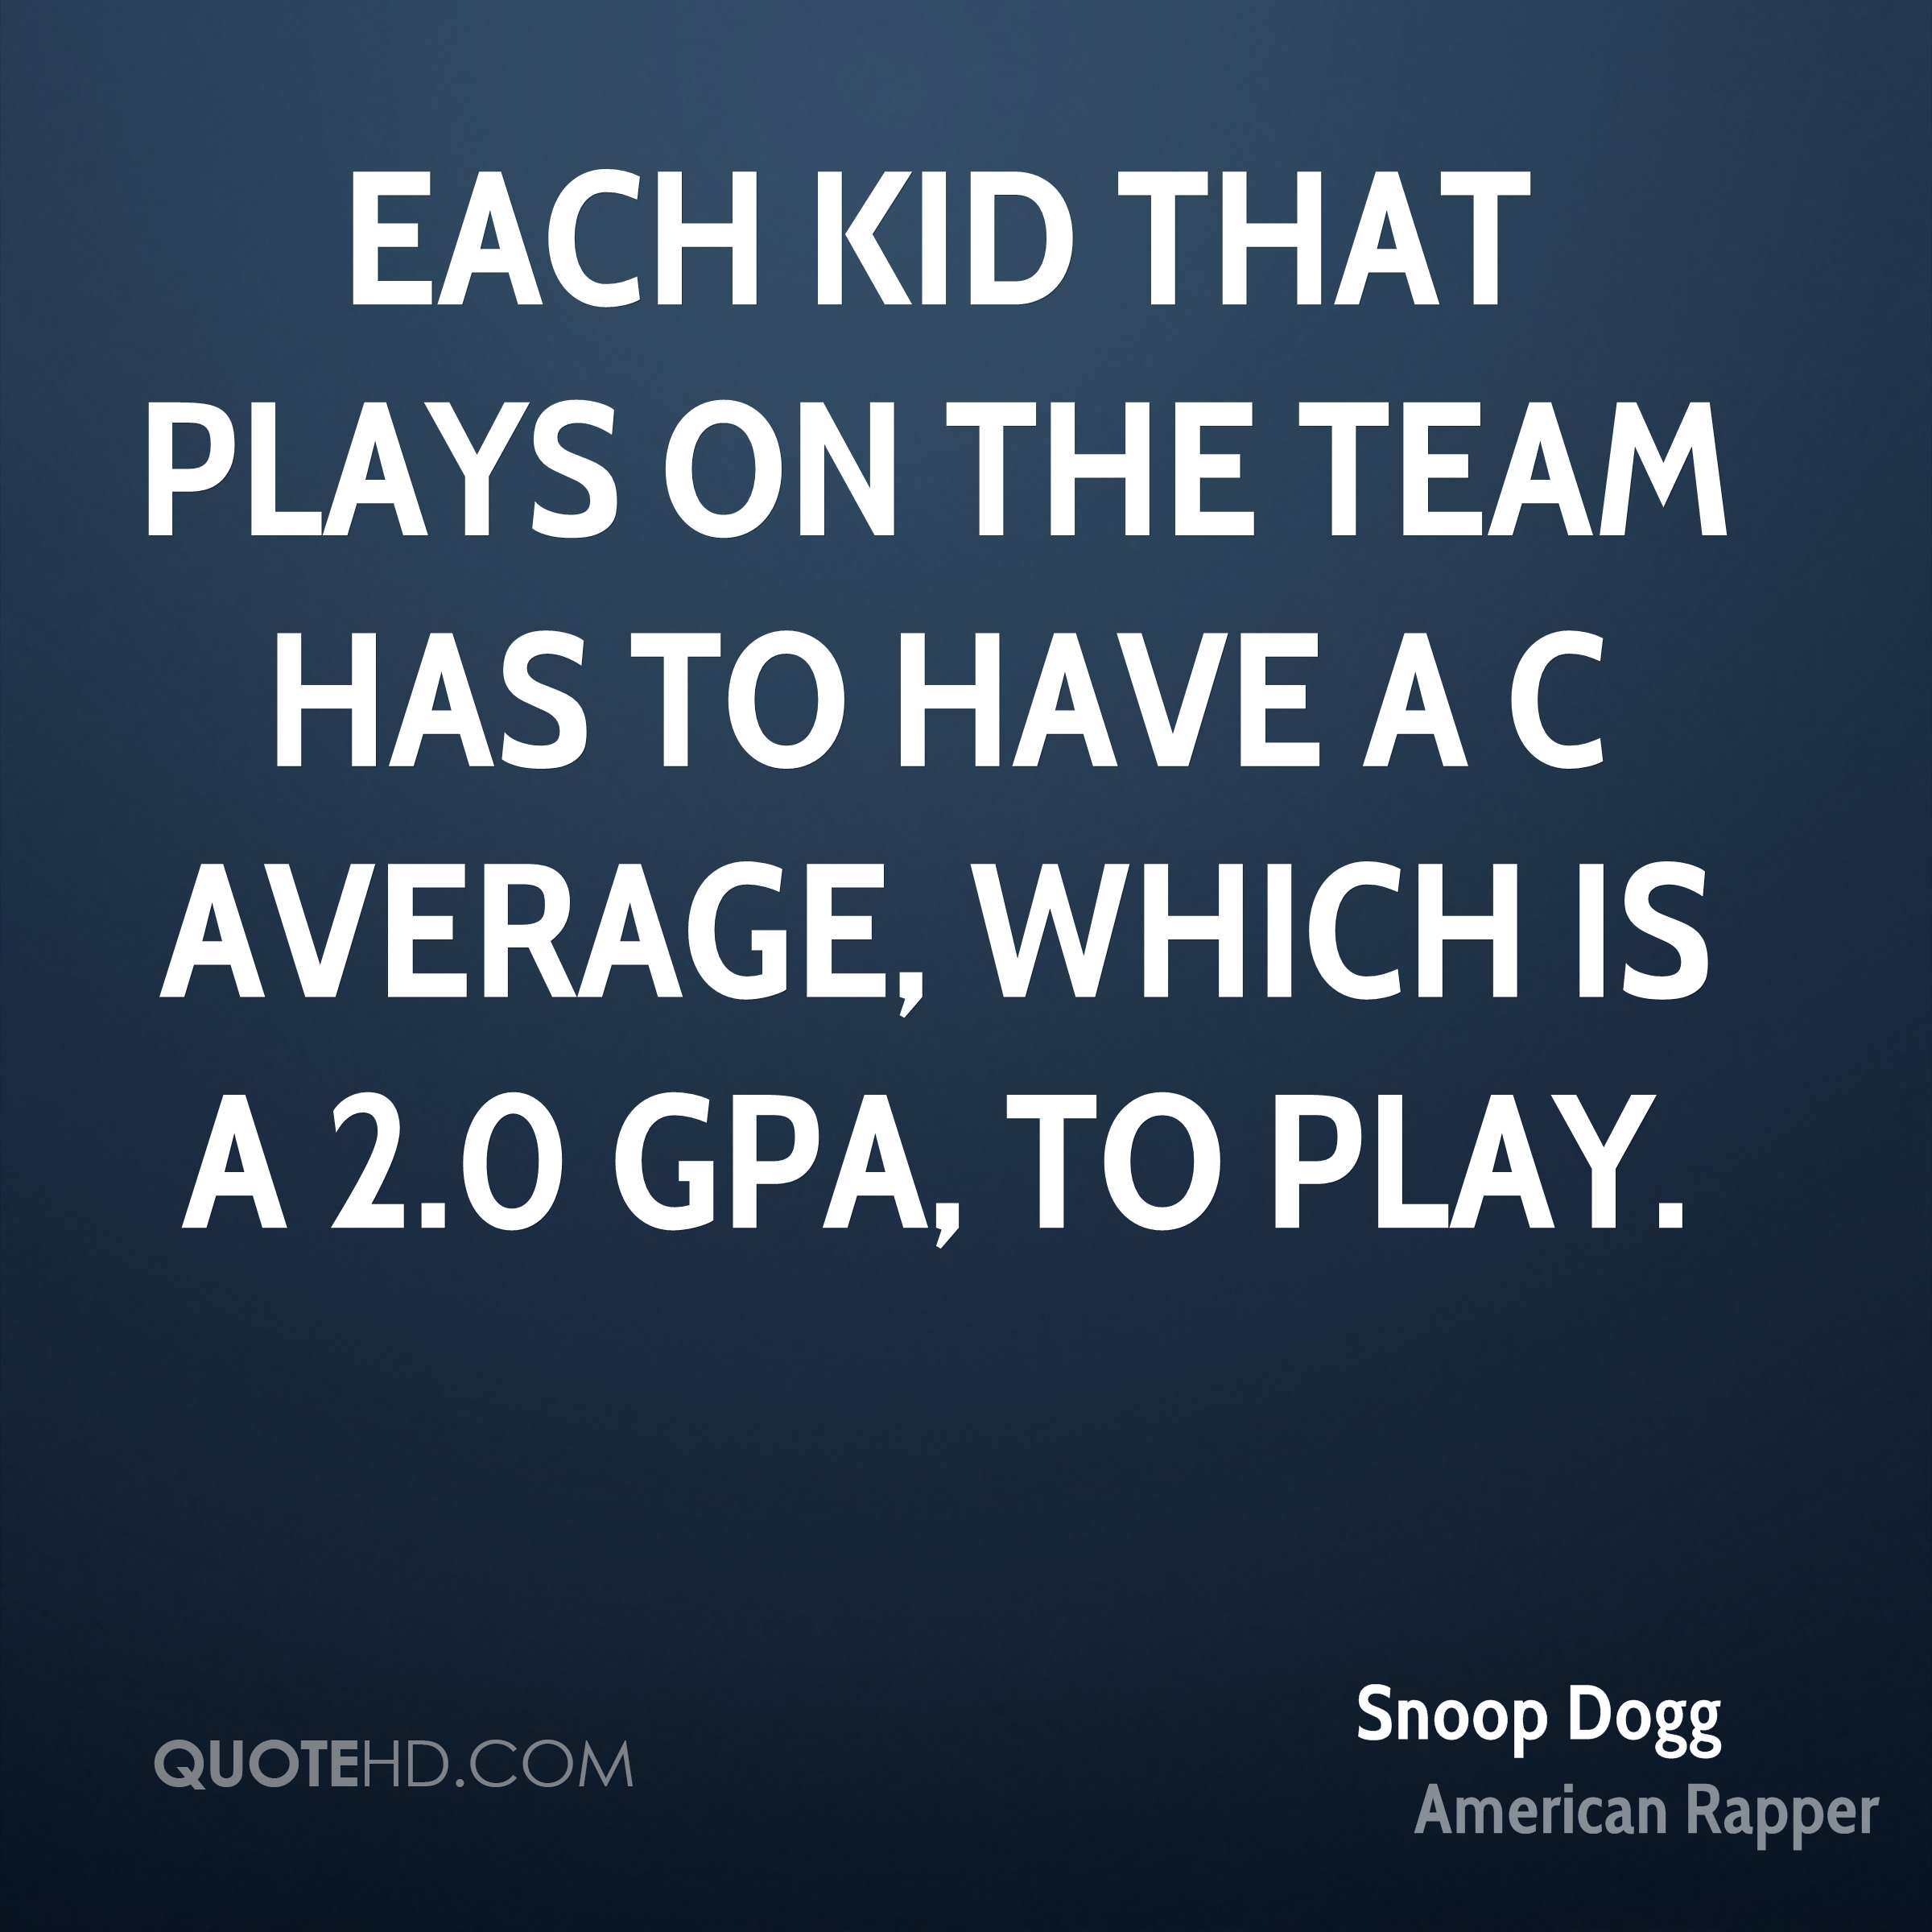 Each kid that plays on the team has to have a C average, which is a 2.0 GPA, to play.